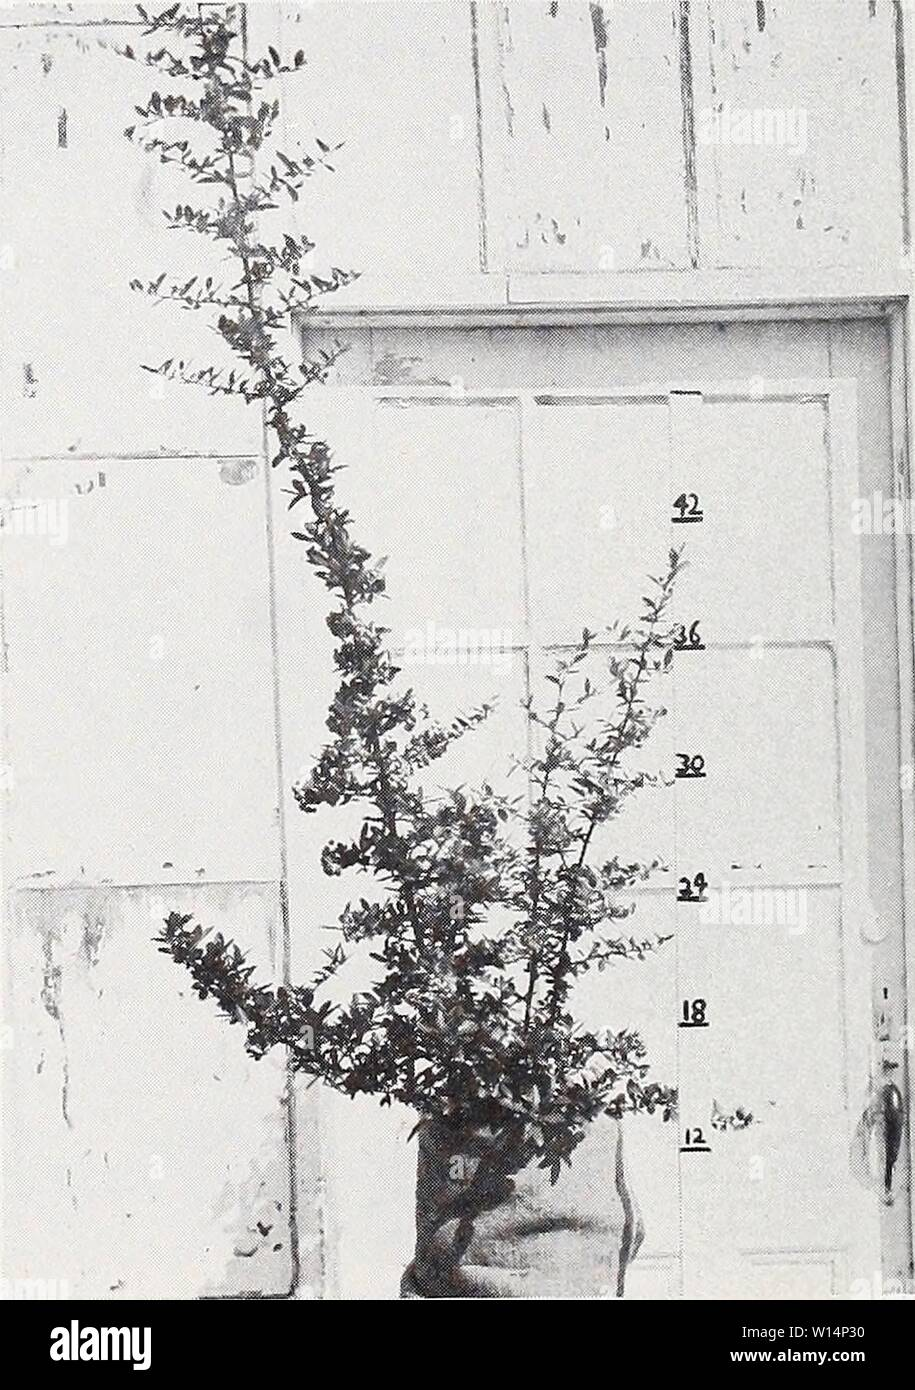 Archive image from page 23 of Descriptive illustrative price list . Descriptive illustrative price list : fall 1962 spring 1963 . descriptiveillus1962jvan Year: 1962  Pyracantha lalandi 1 gal. can    Pyracantha lalandi 4 gal. can Stock Photo